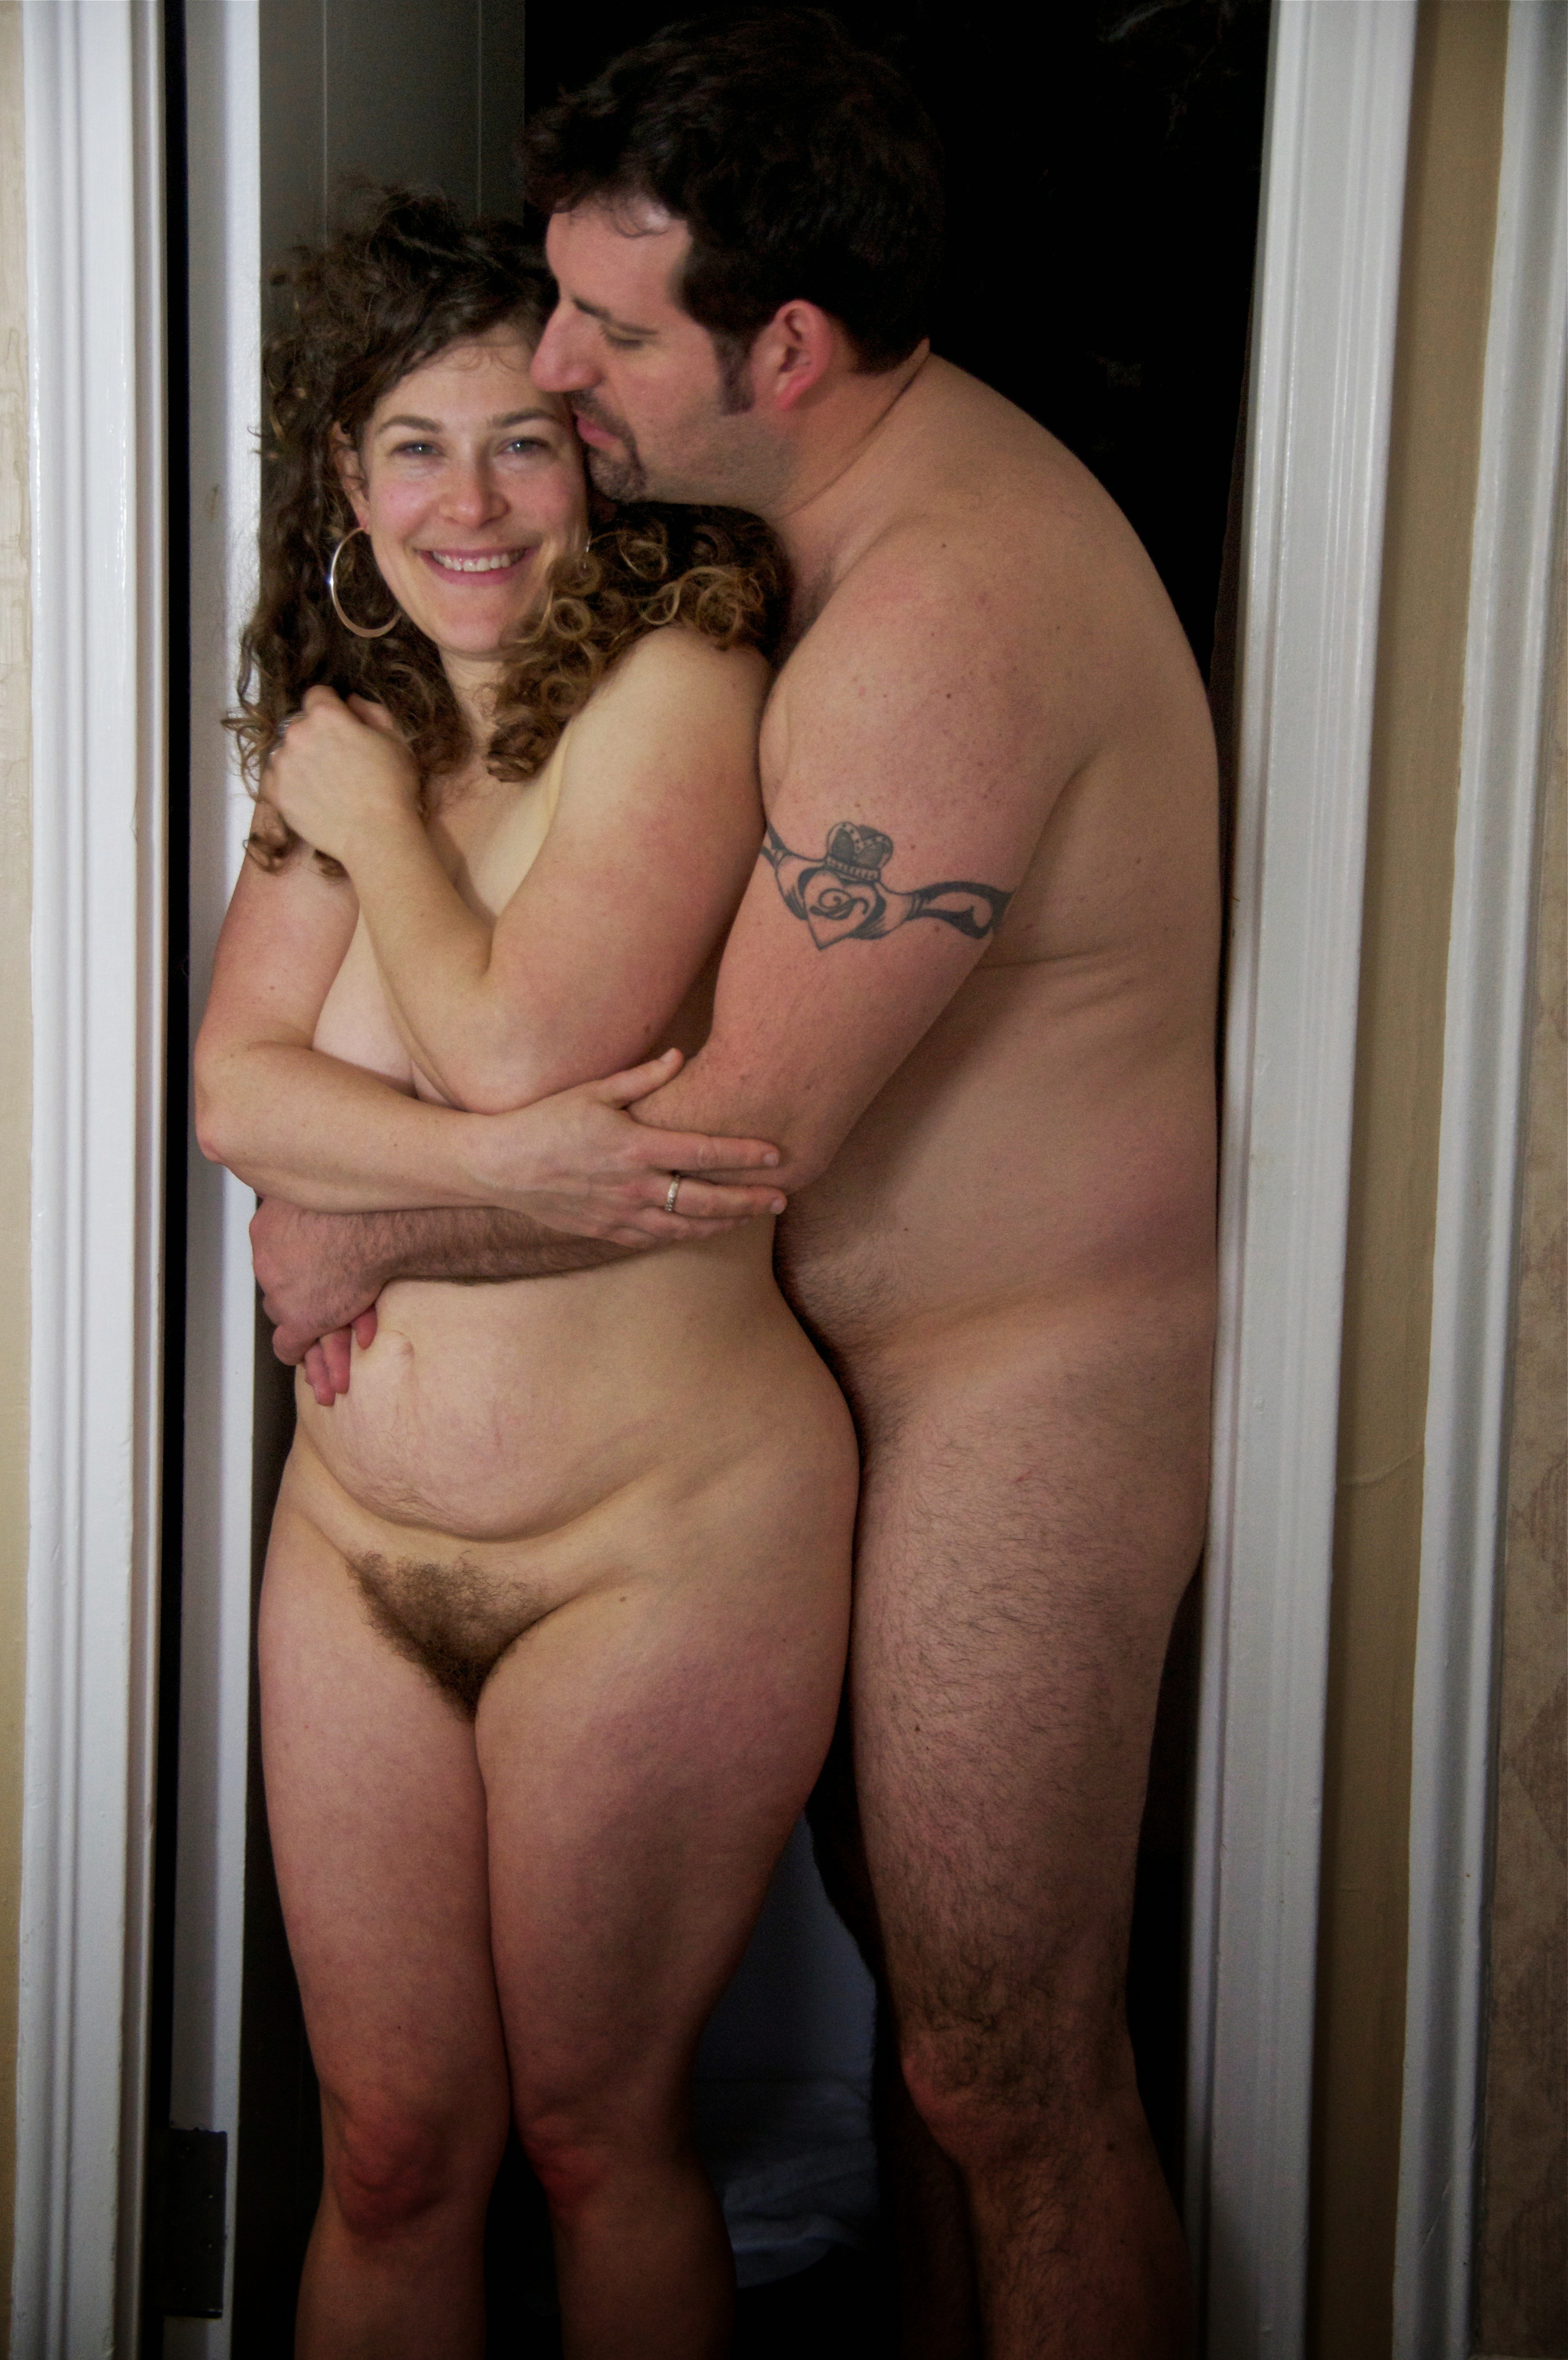 Naked couple in doorway